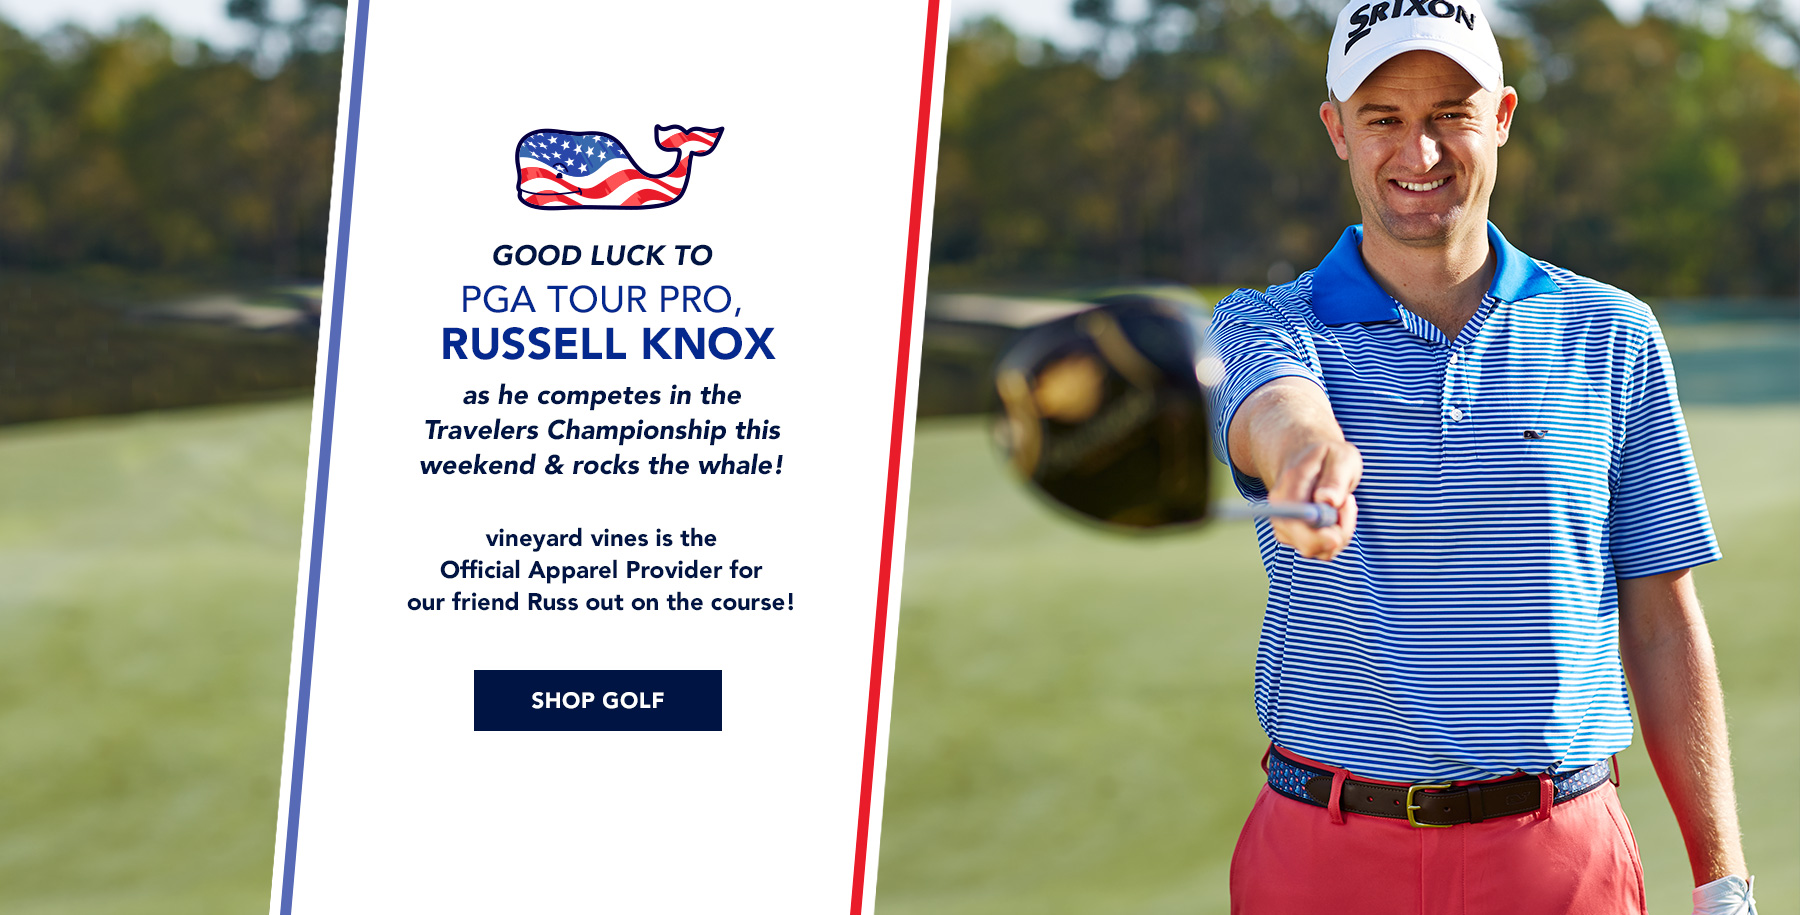 Good luck to our friend GAP Tour Pro Russell Knox as he copetes in the Travelers Championship this weekend & rocks the whale! vineyard vines is the officall apparel provider for Russ out on the course! Shop Golf.